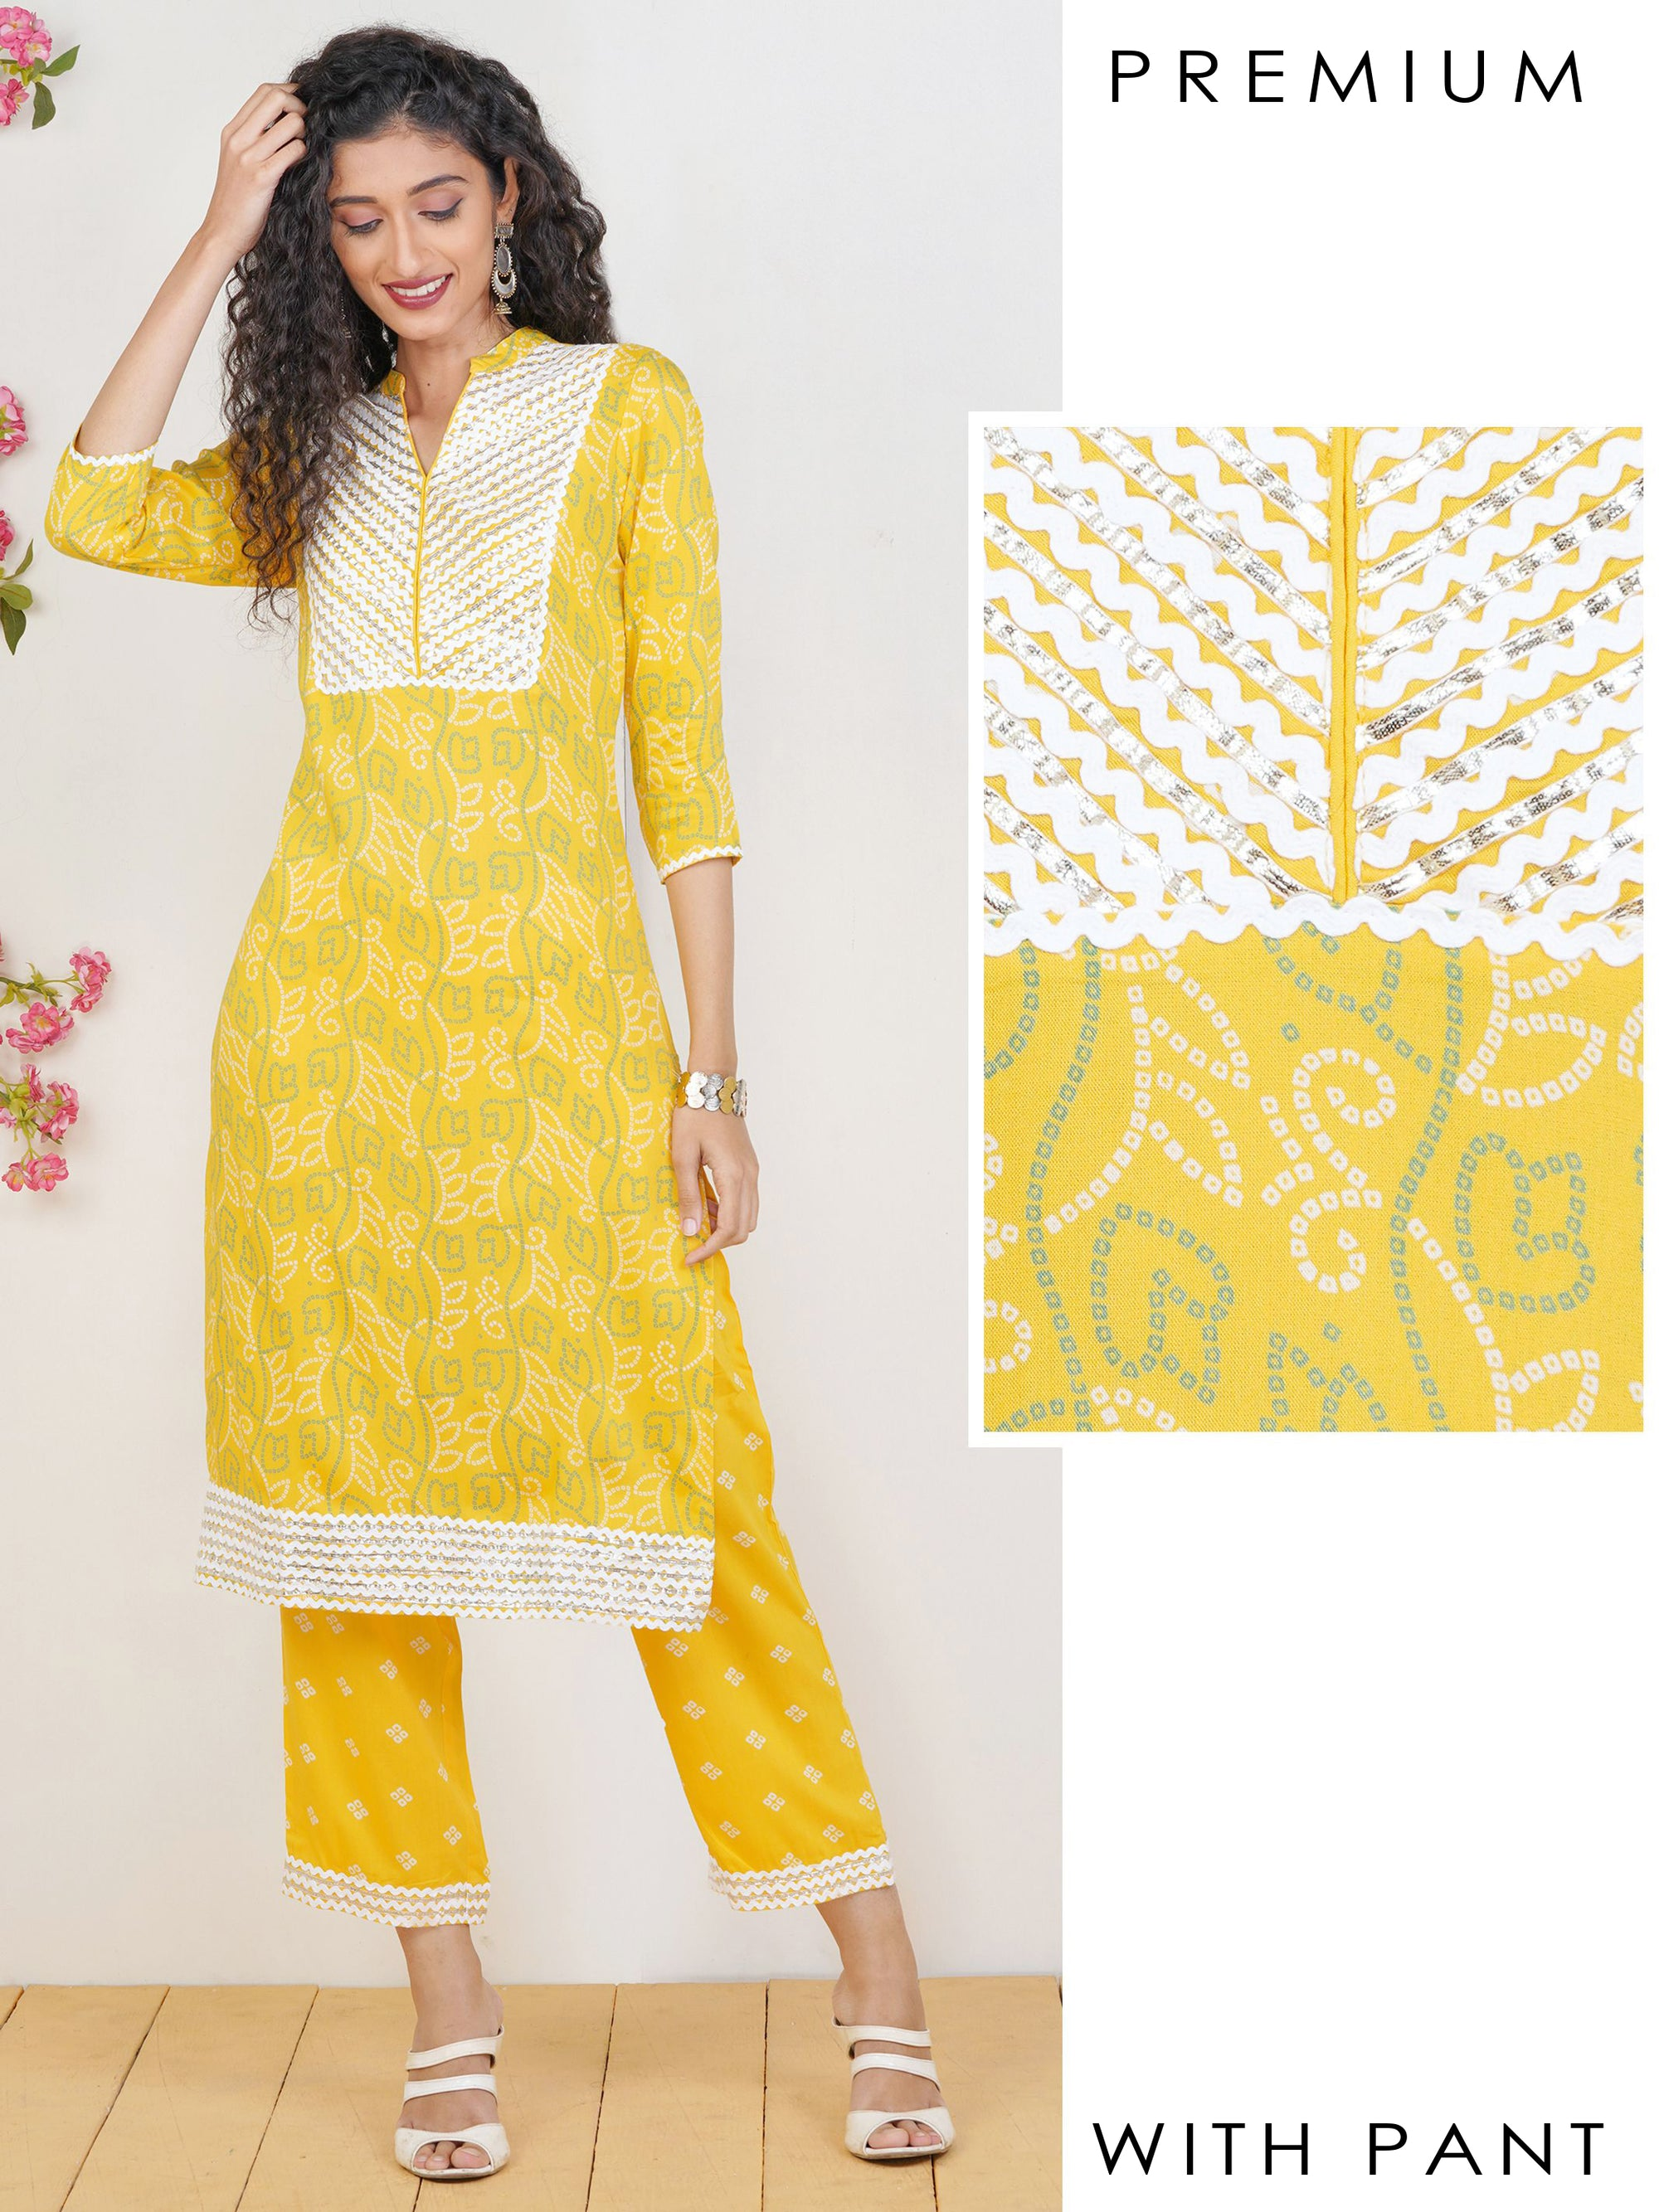 Serpentine & Gota Lace Detailed Kurti & Bandhani Pant Set – Yellow